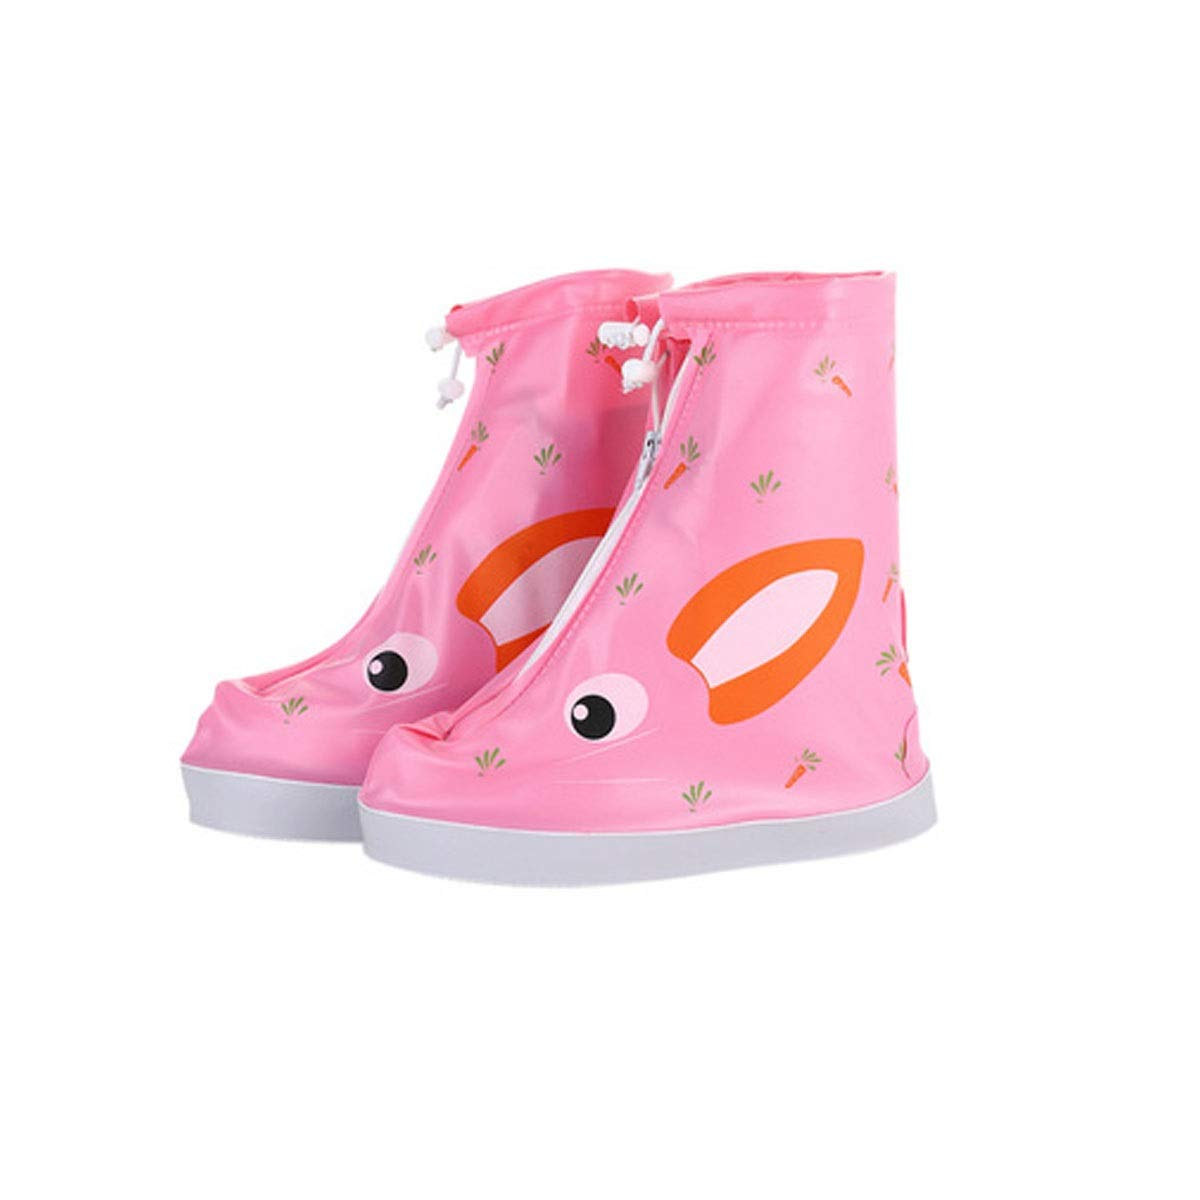 WUHUIZHENJINGXIAOBU Rain Boots, Non-Slip Thick Wear-Resistant Rubber Waterproof Rain Boots, White, Red, Blue, Pink Shoe Covers That can be Worn on Rainy Days, (Color : Pink, Size : S)